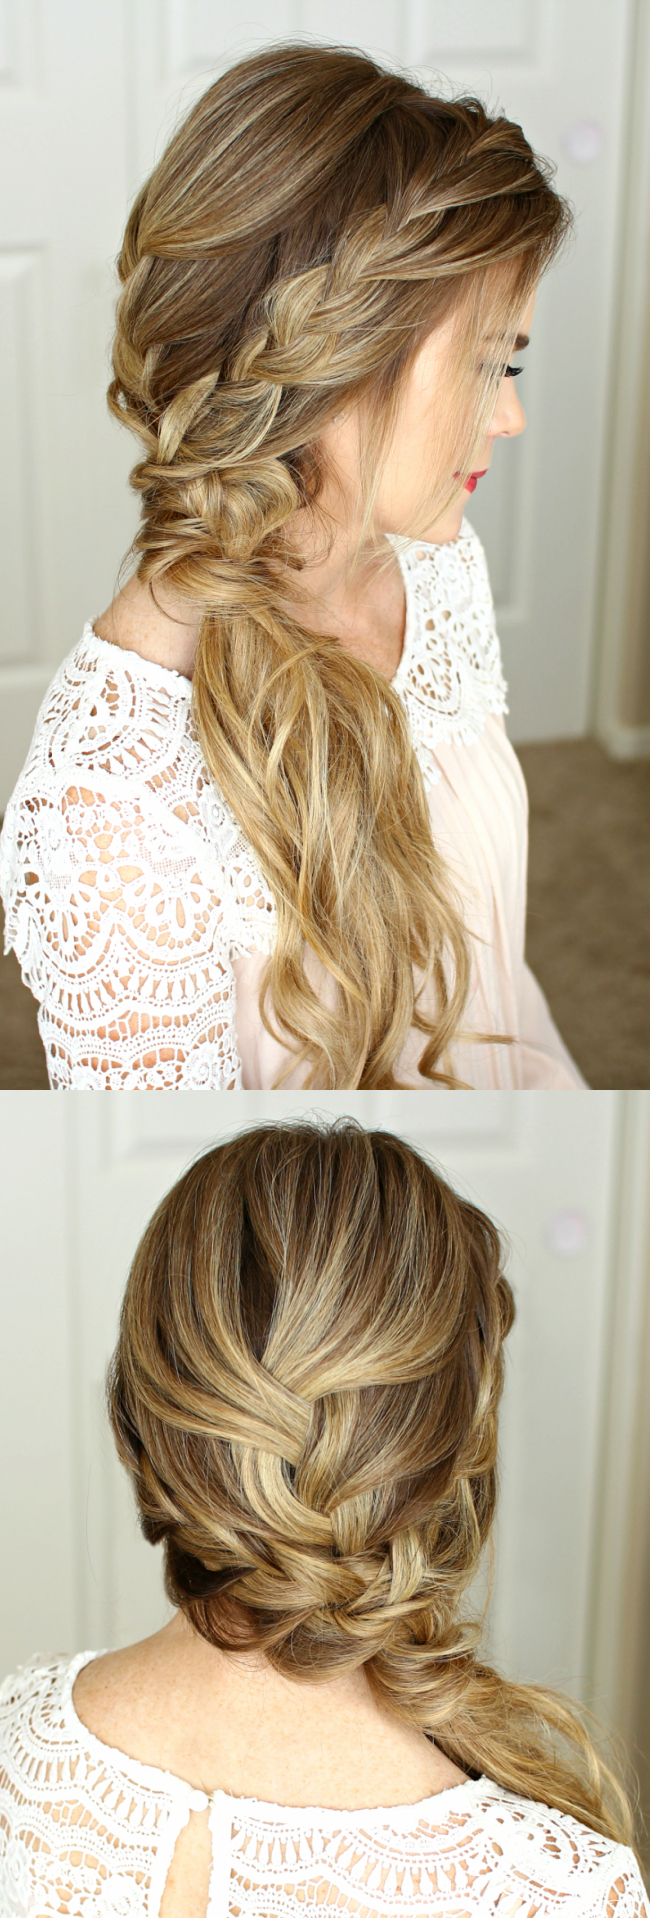 Braided Side Swept Prom Hairstyle (View 8 of 20)